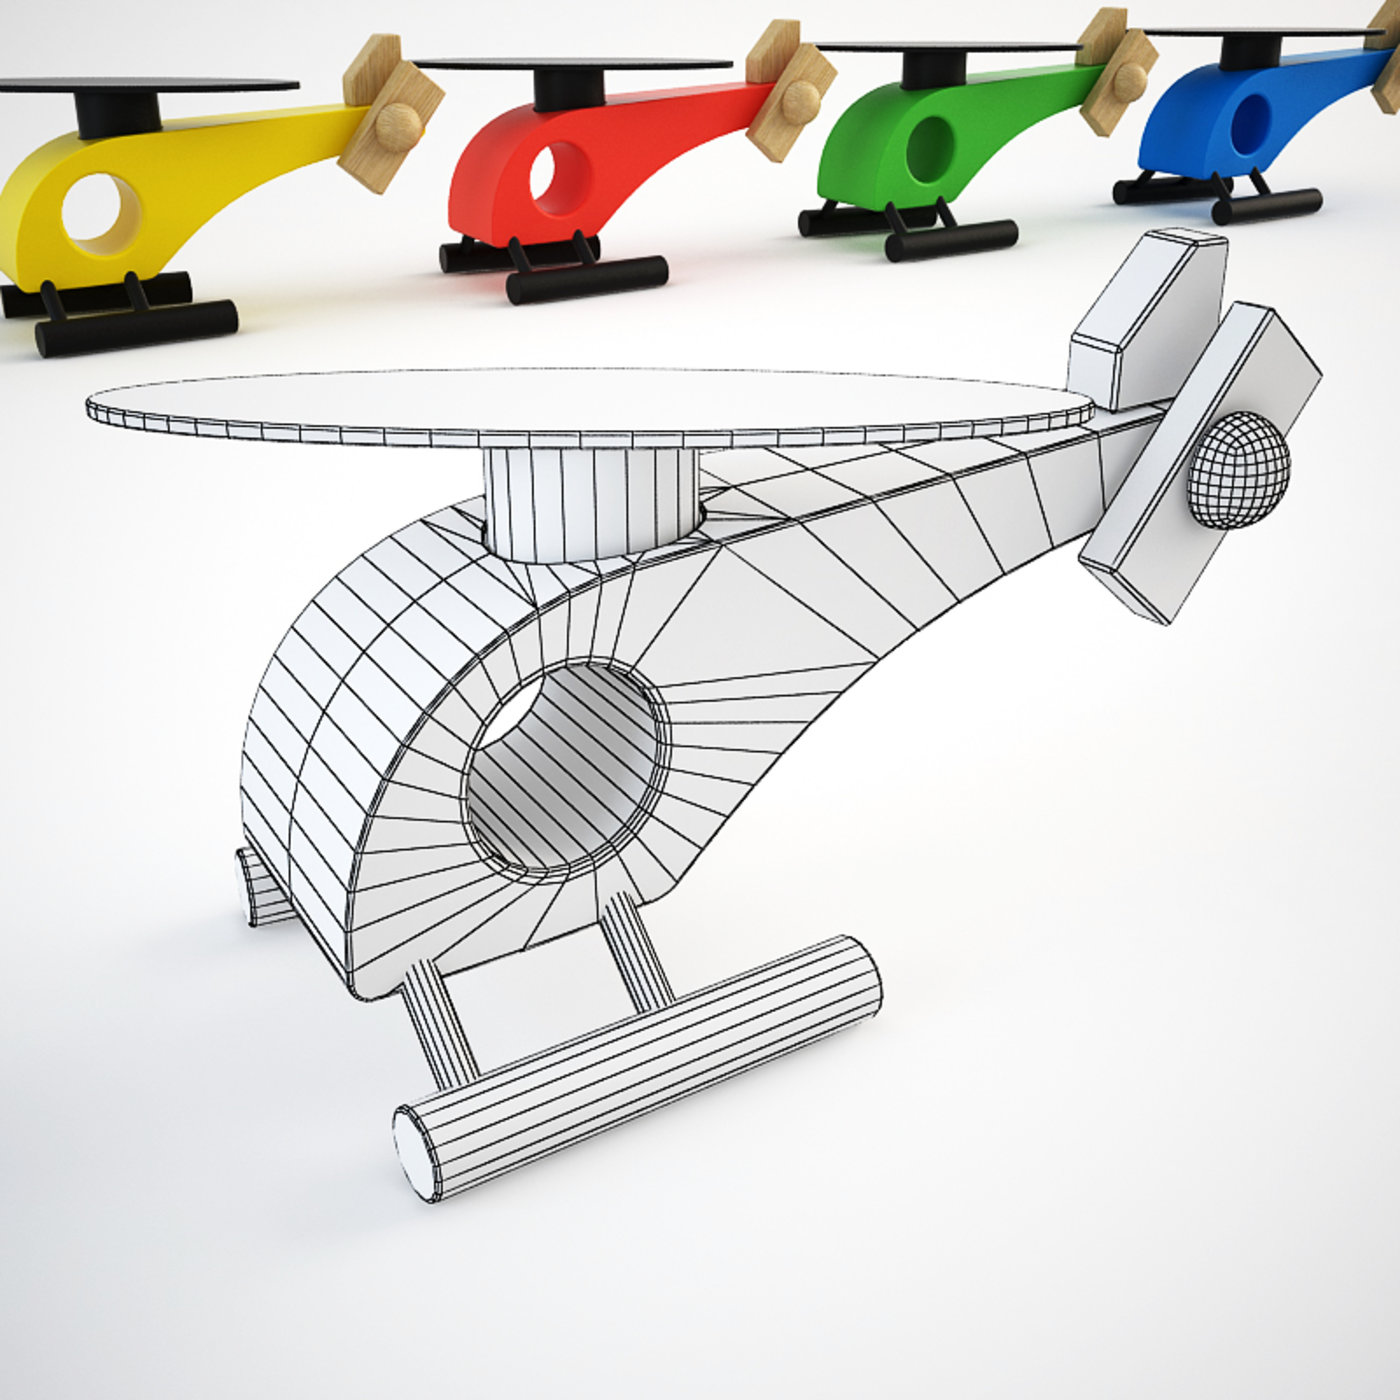 Wooden Helicopter Toy Set